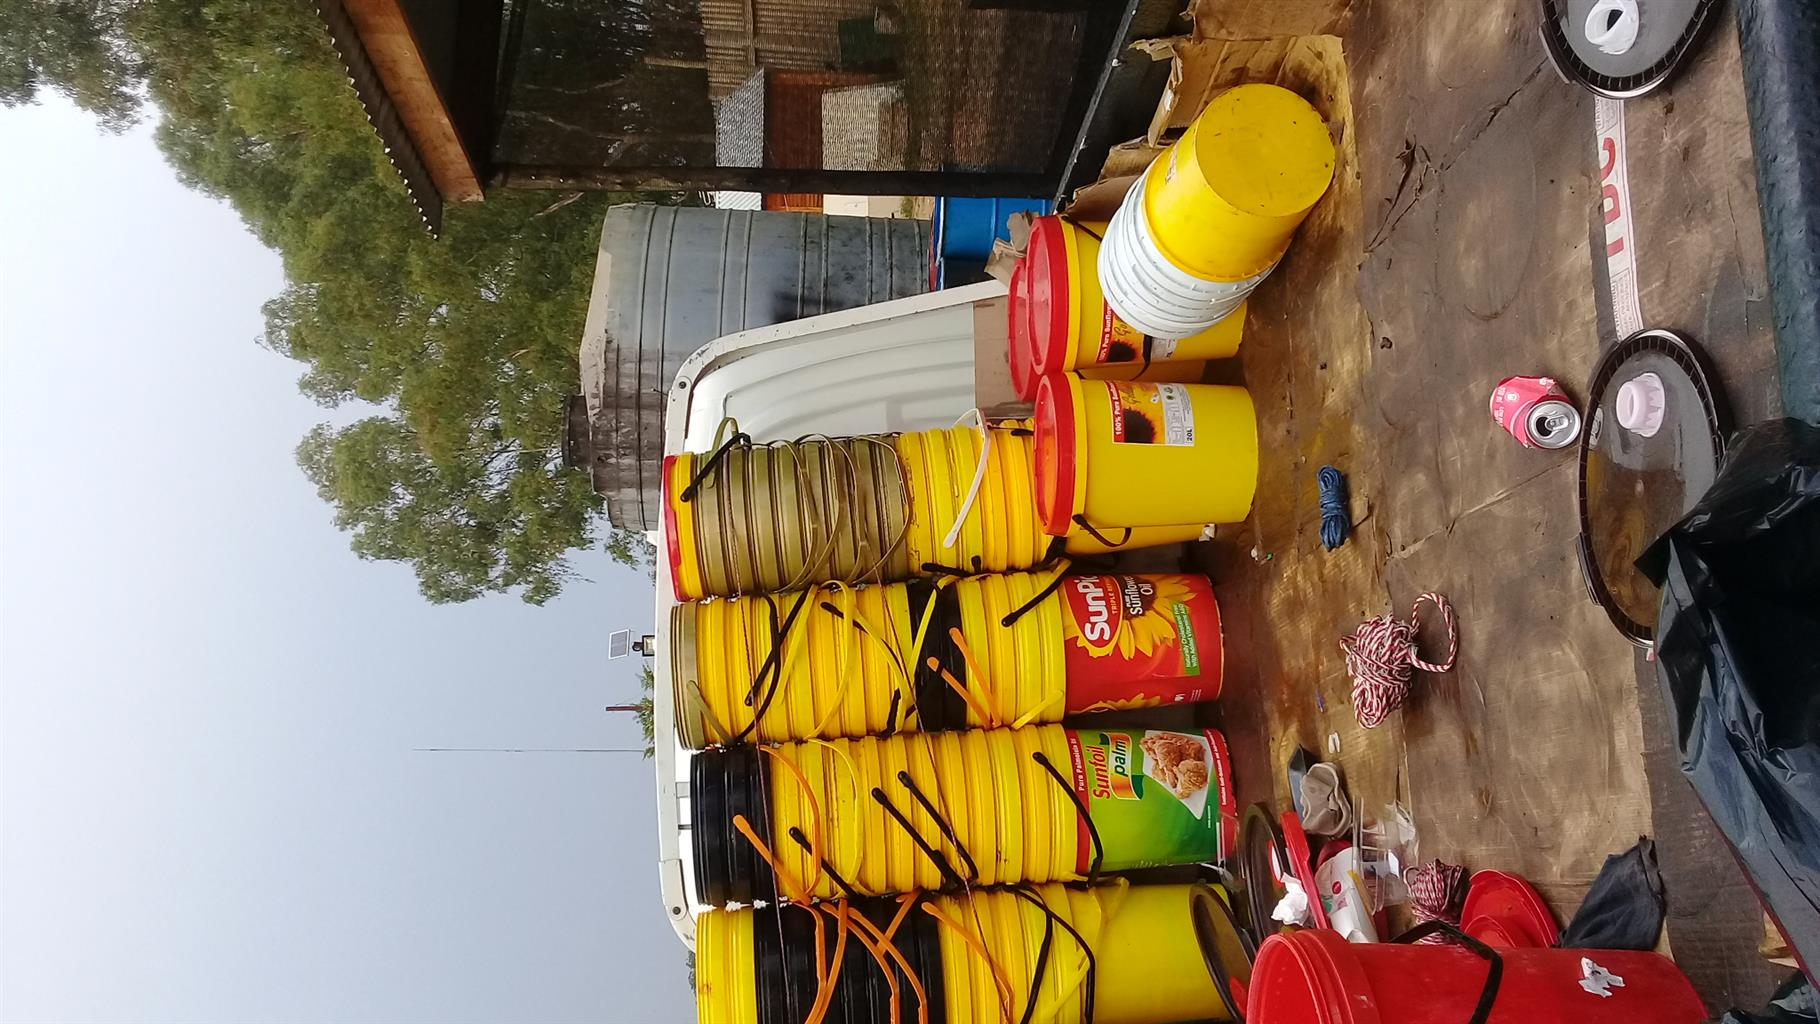 20litre second hand  buckets 4 sell